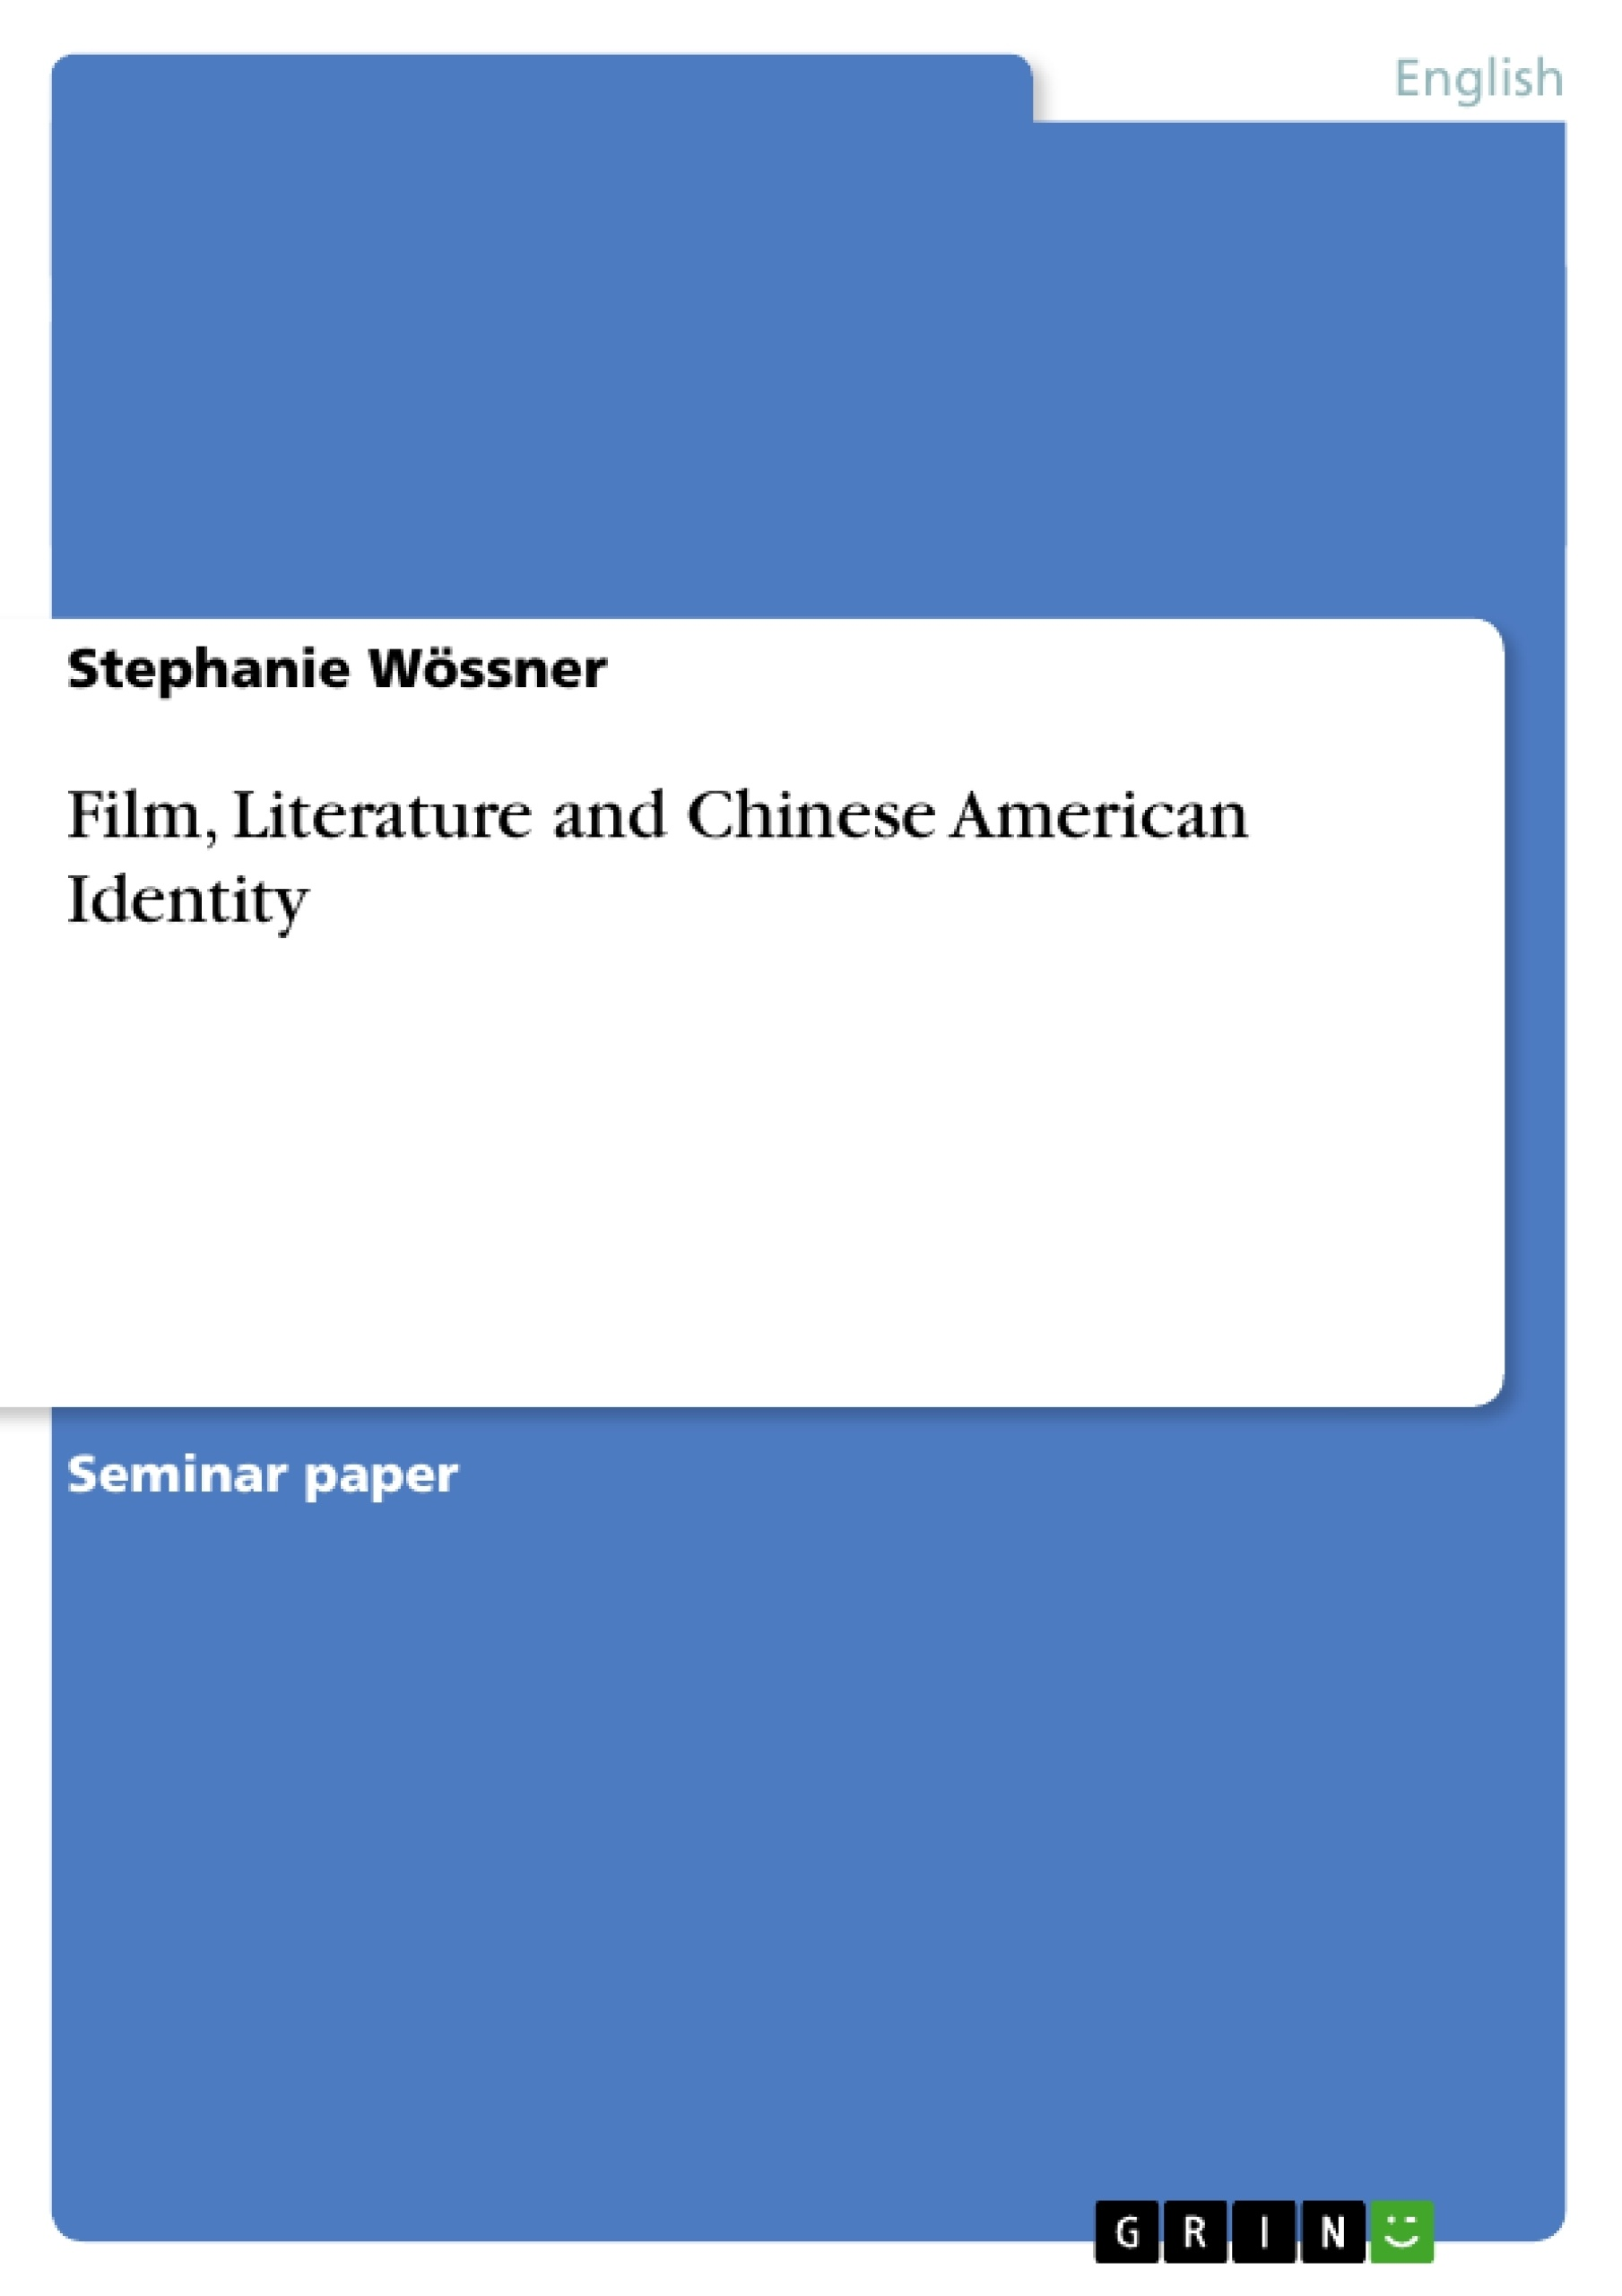 Title: Film, Literature and Chinese American Identity